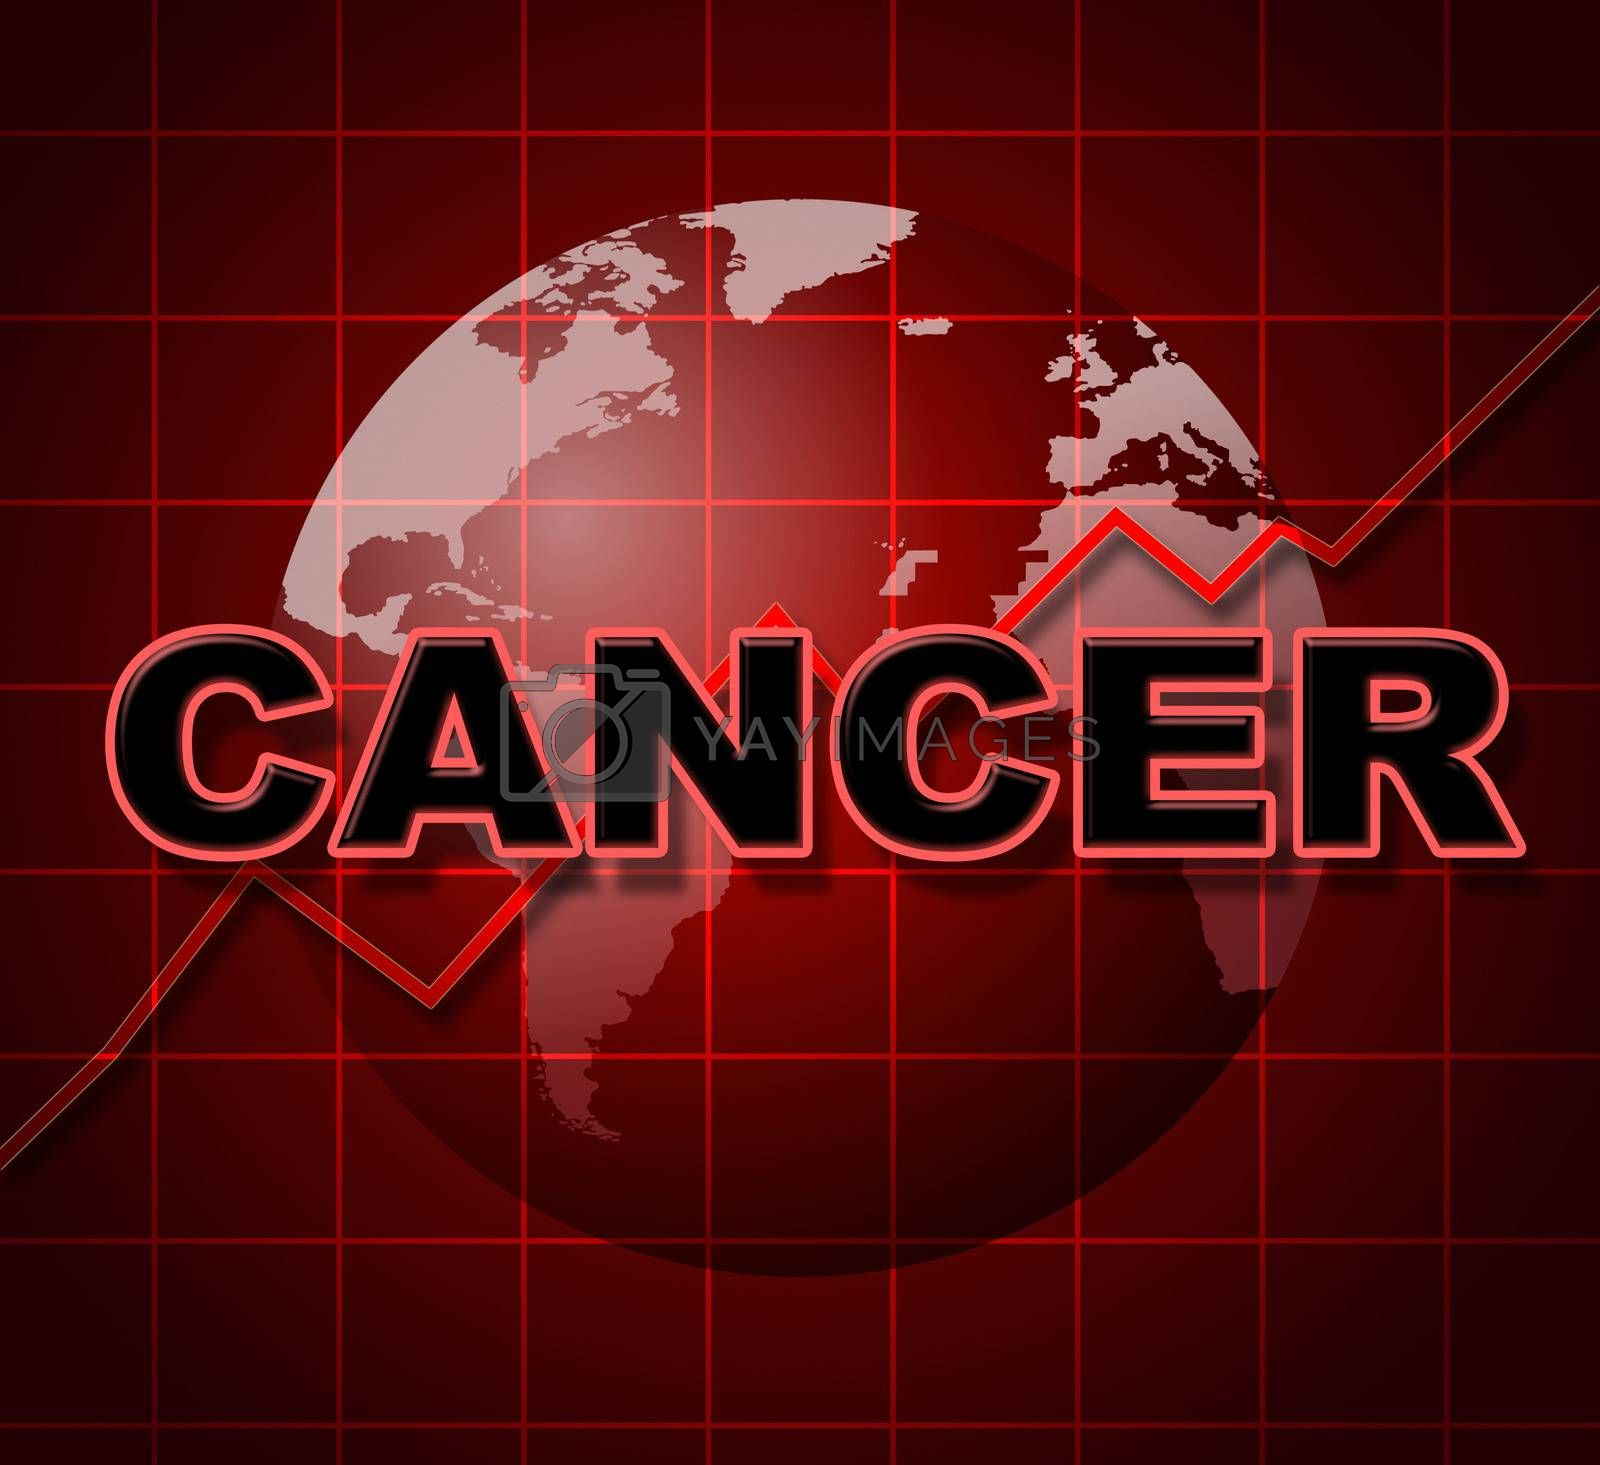 Cancer Graph Indicates Cancerous Growth And Diagram by stuartmiles